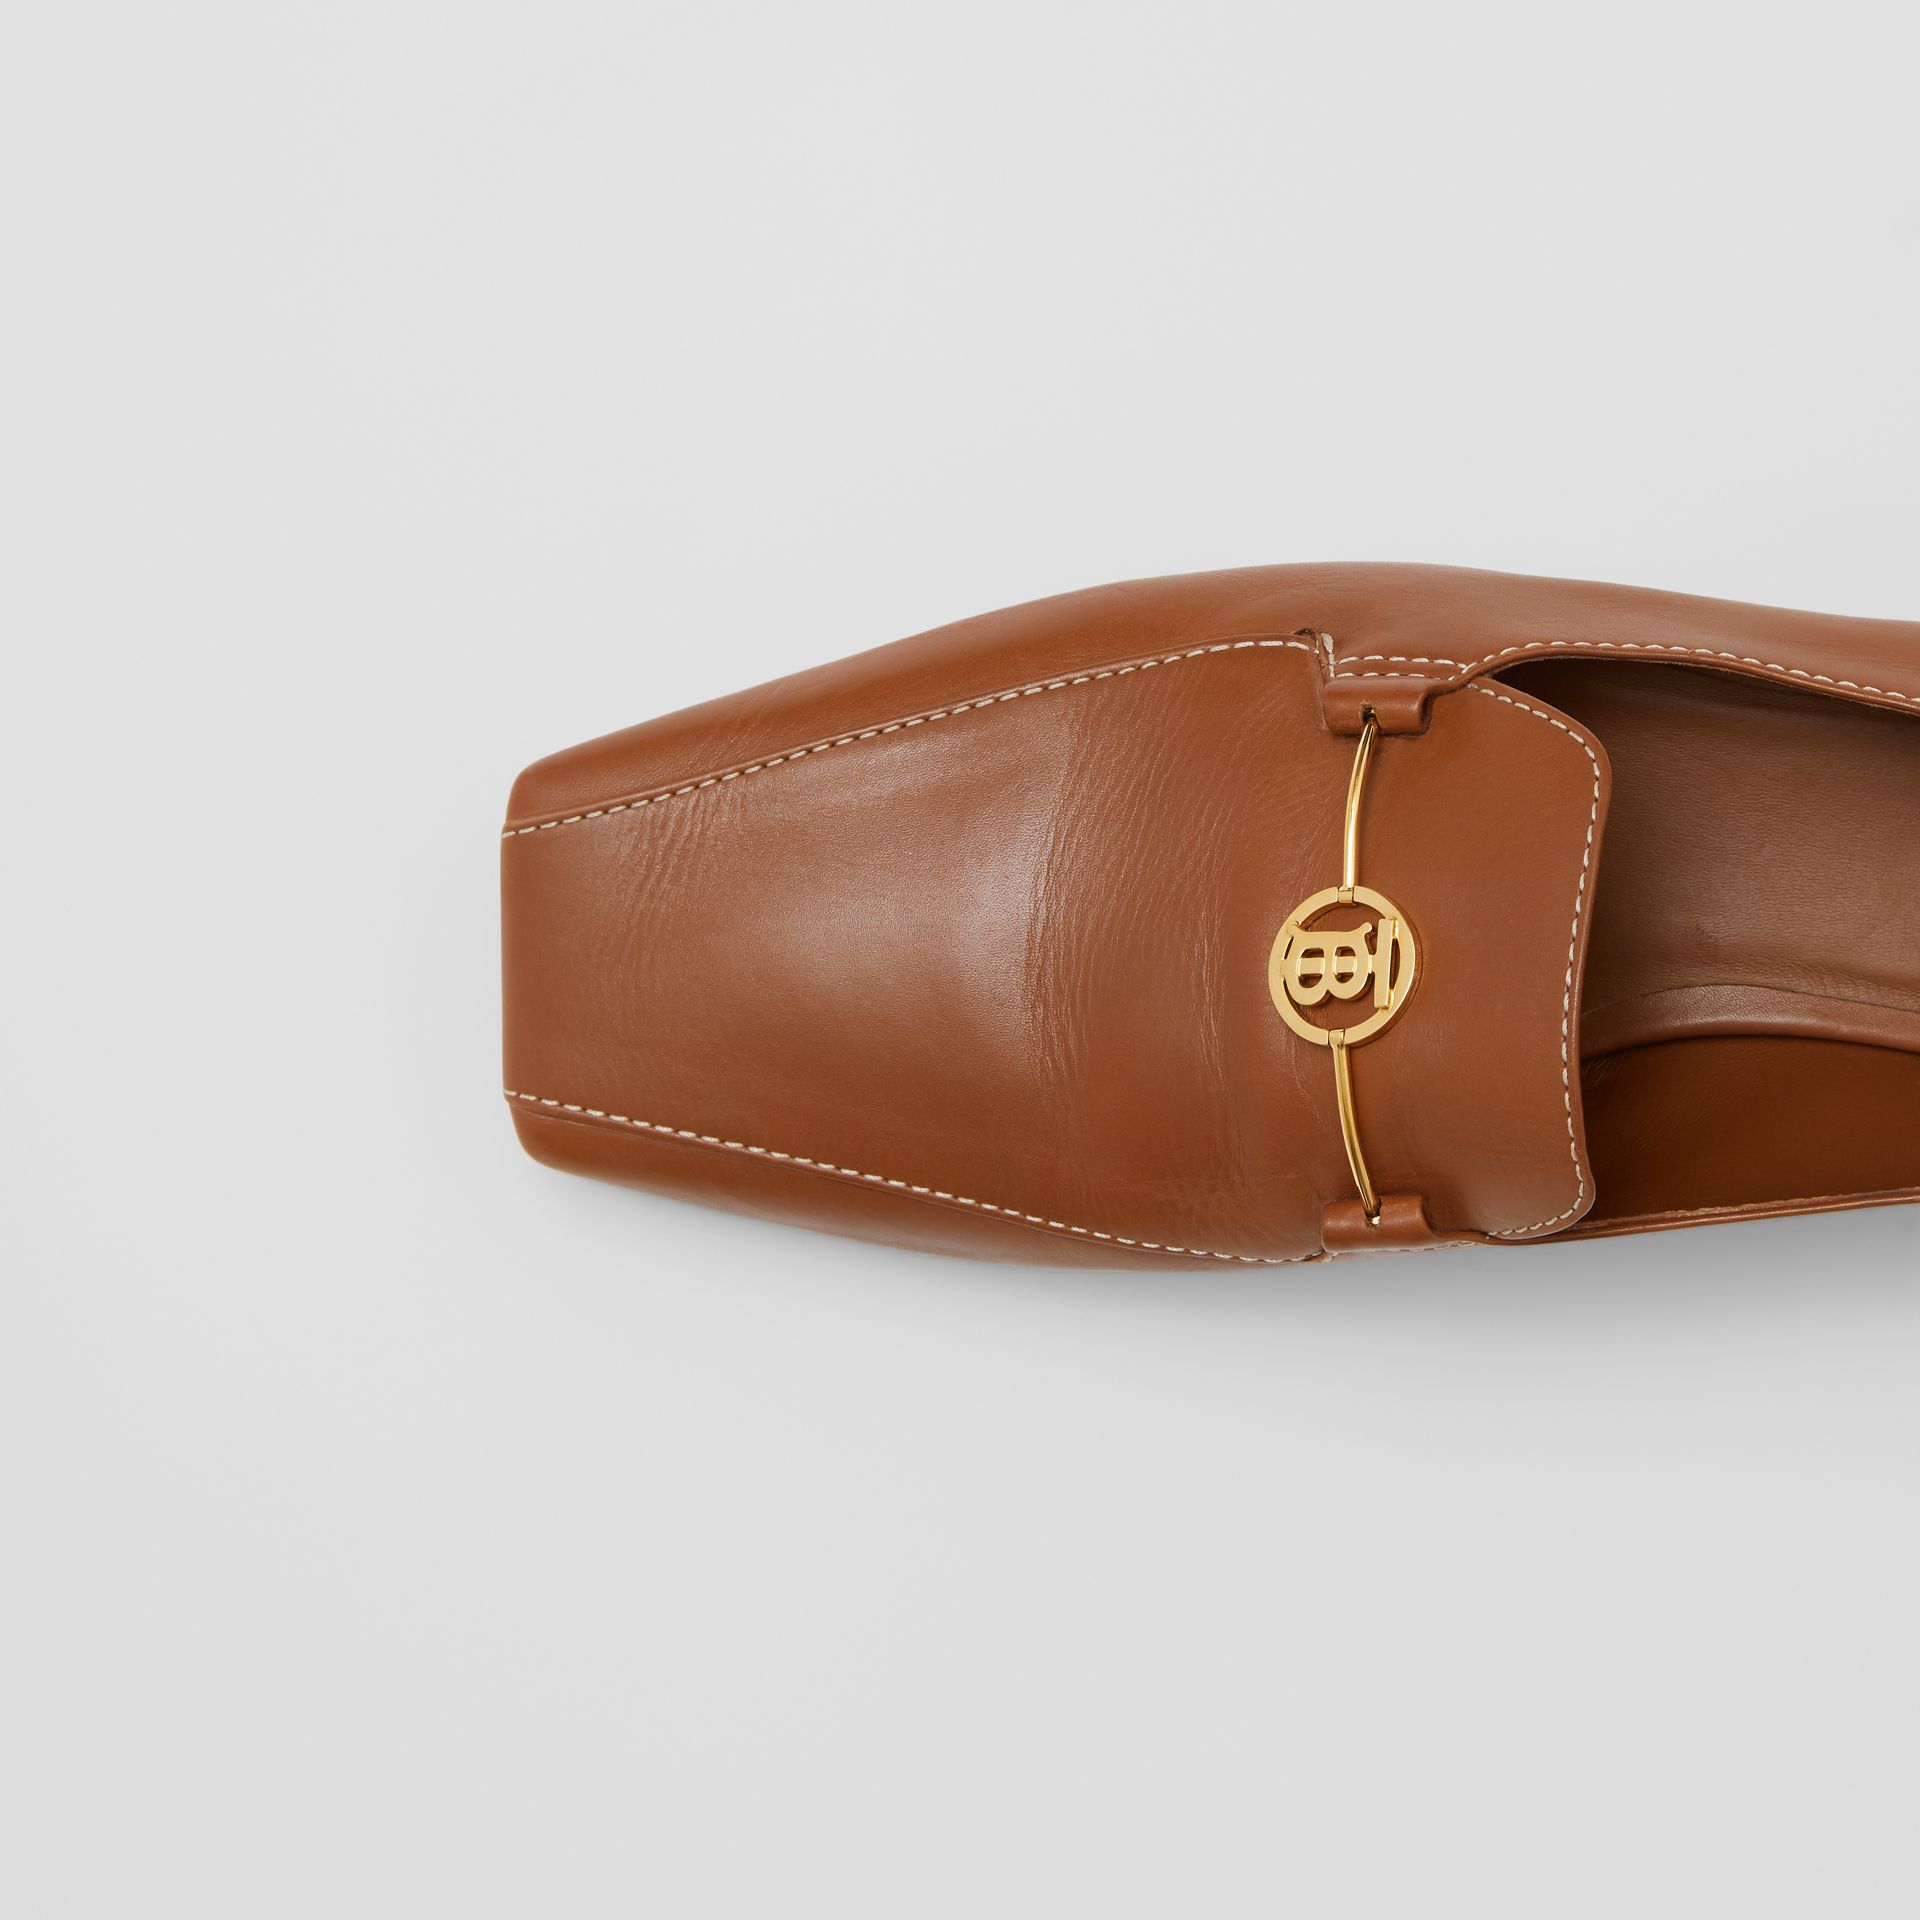 Monogram Motif Leather Loafers in Tan - Women | Burberry - gallery image 1